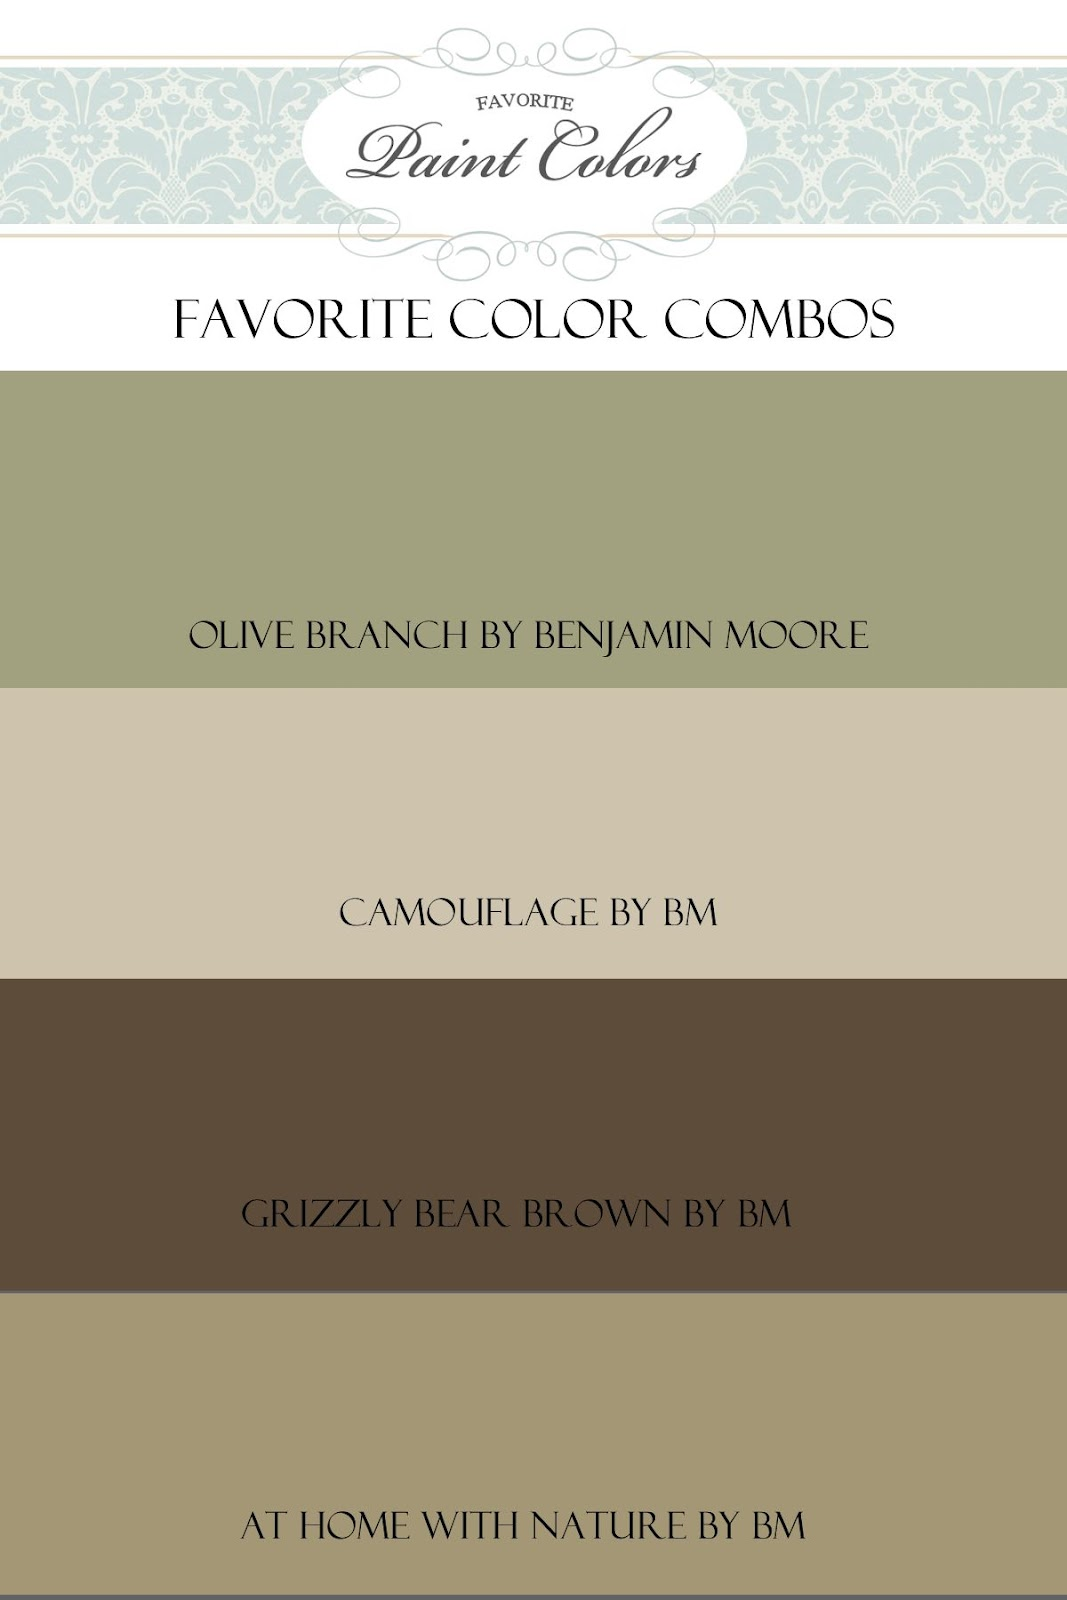 Favorite Paint Colors March 2012